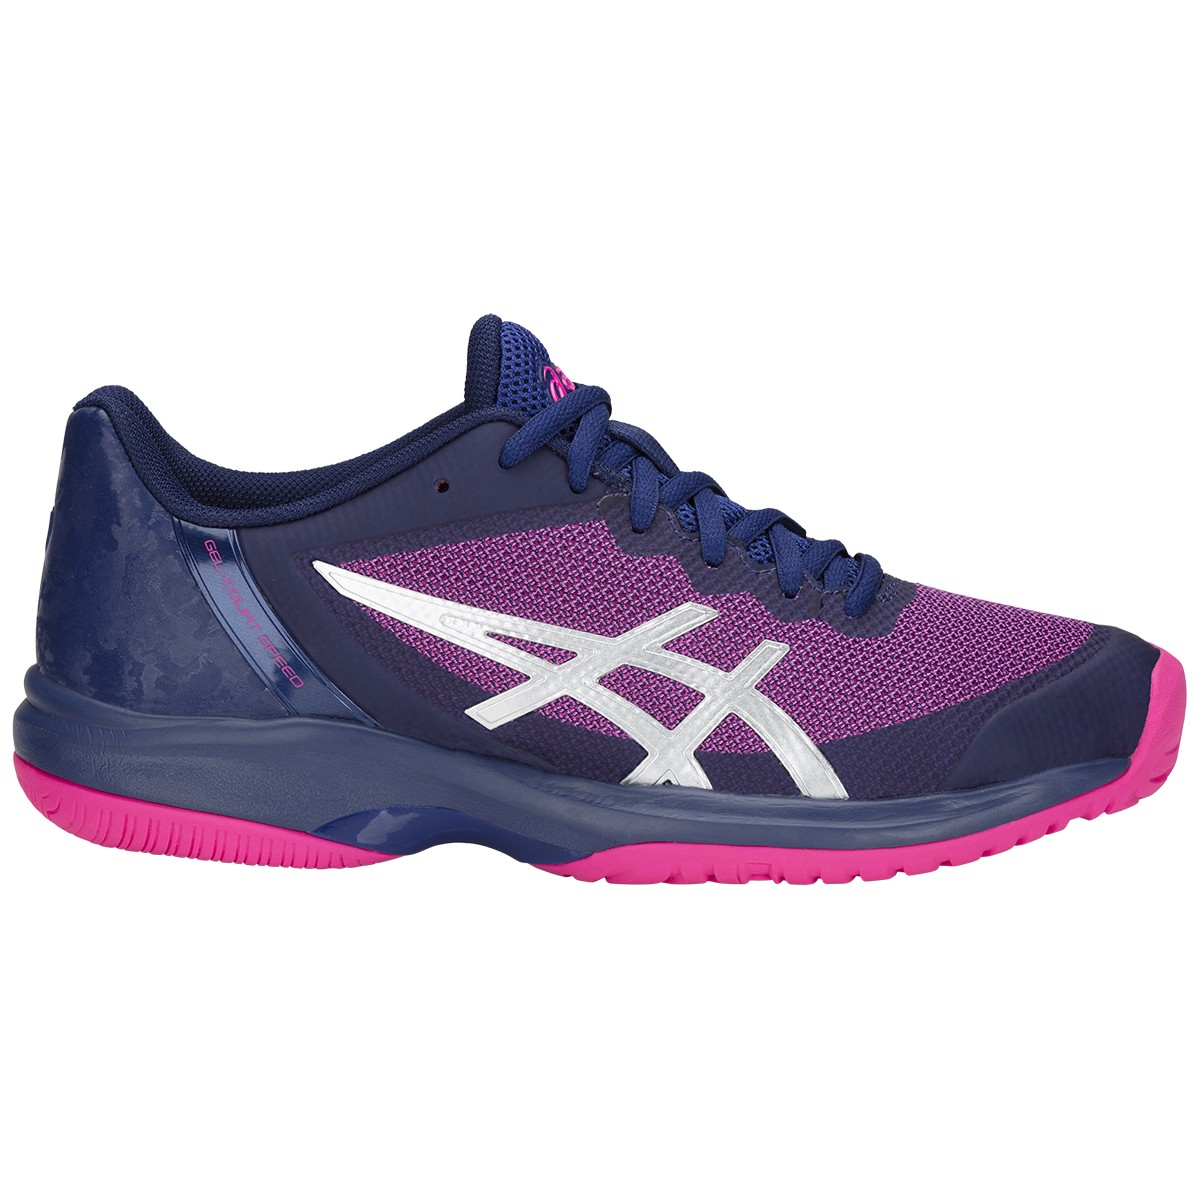 WOMEN'S ASICS GEL COURT SPEED ALL COURT SHOES